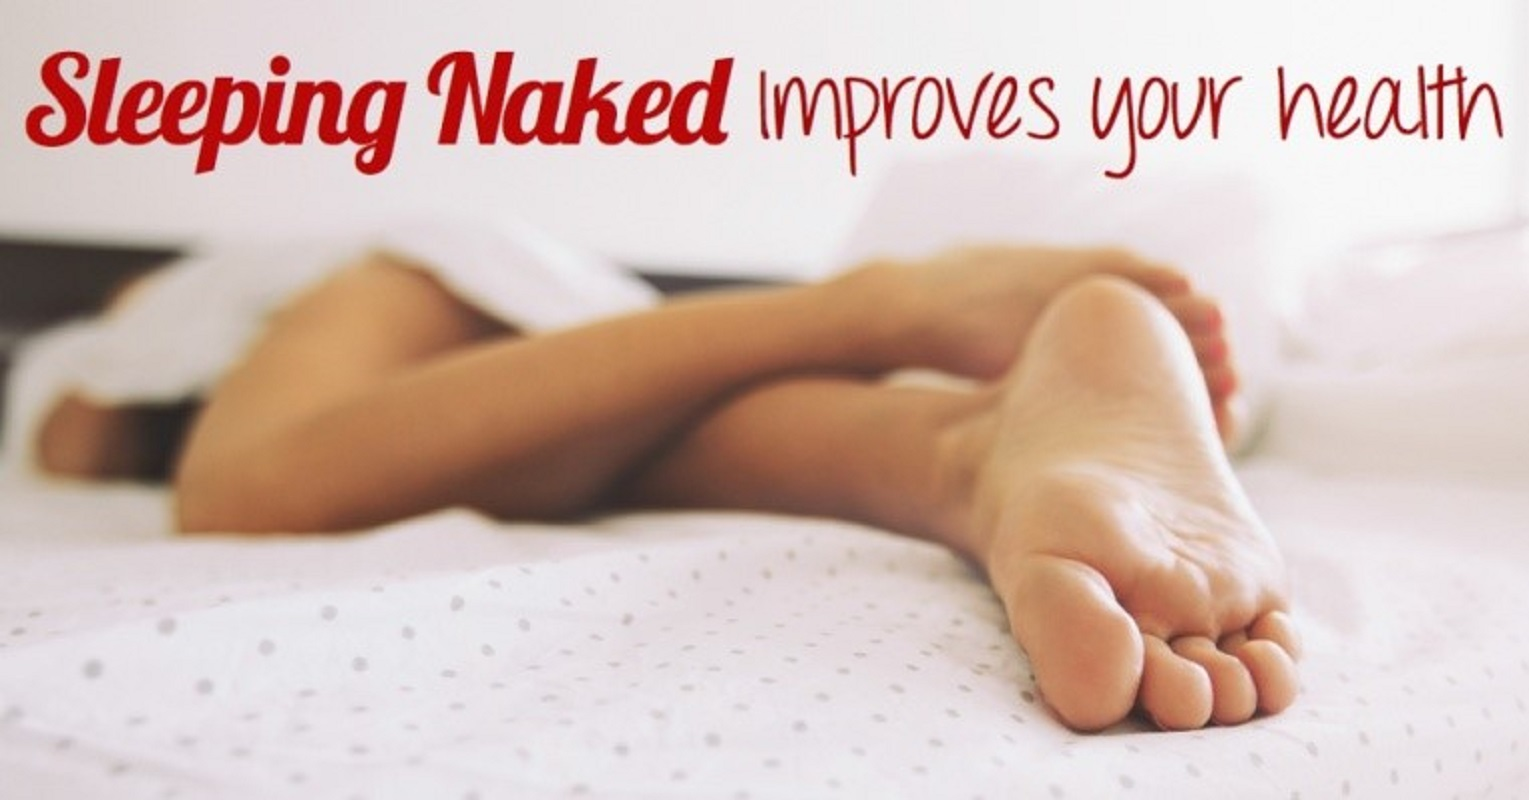 Health,Lifestyle,Sleep,Nude,Naked,Sleep Naked